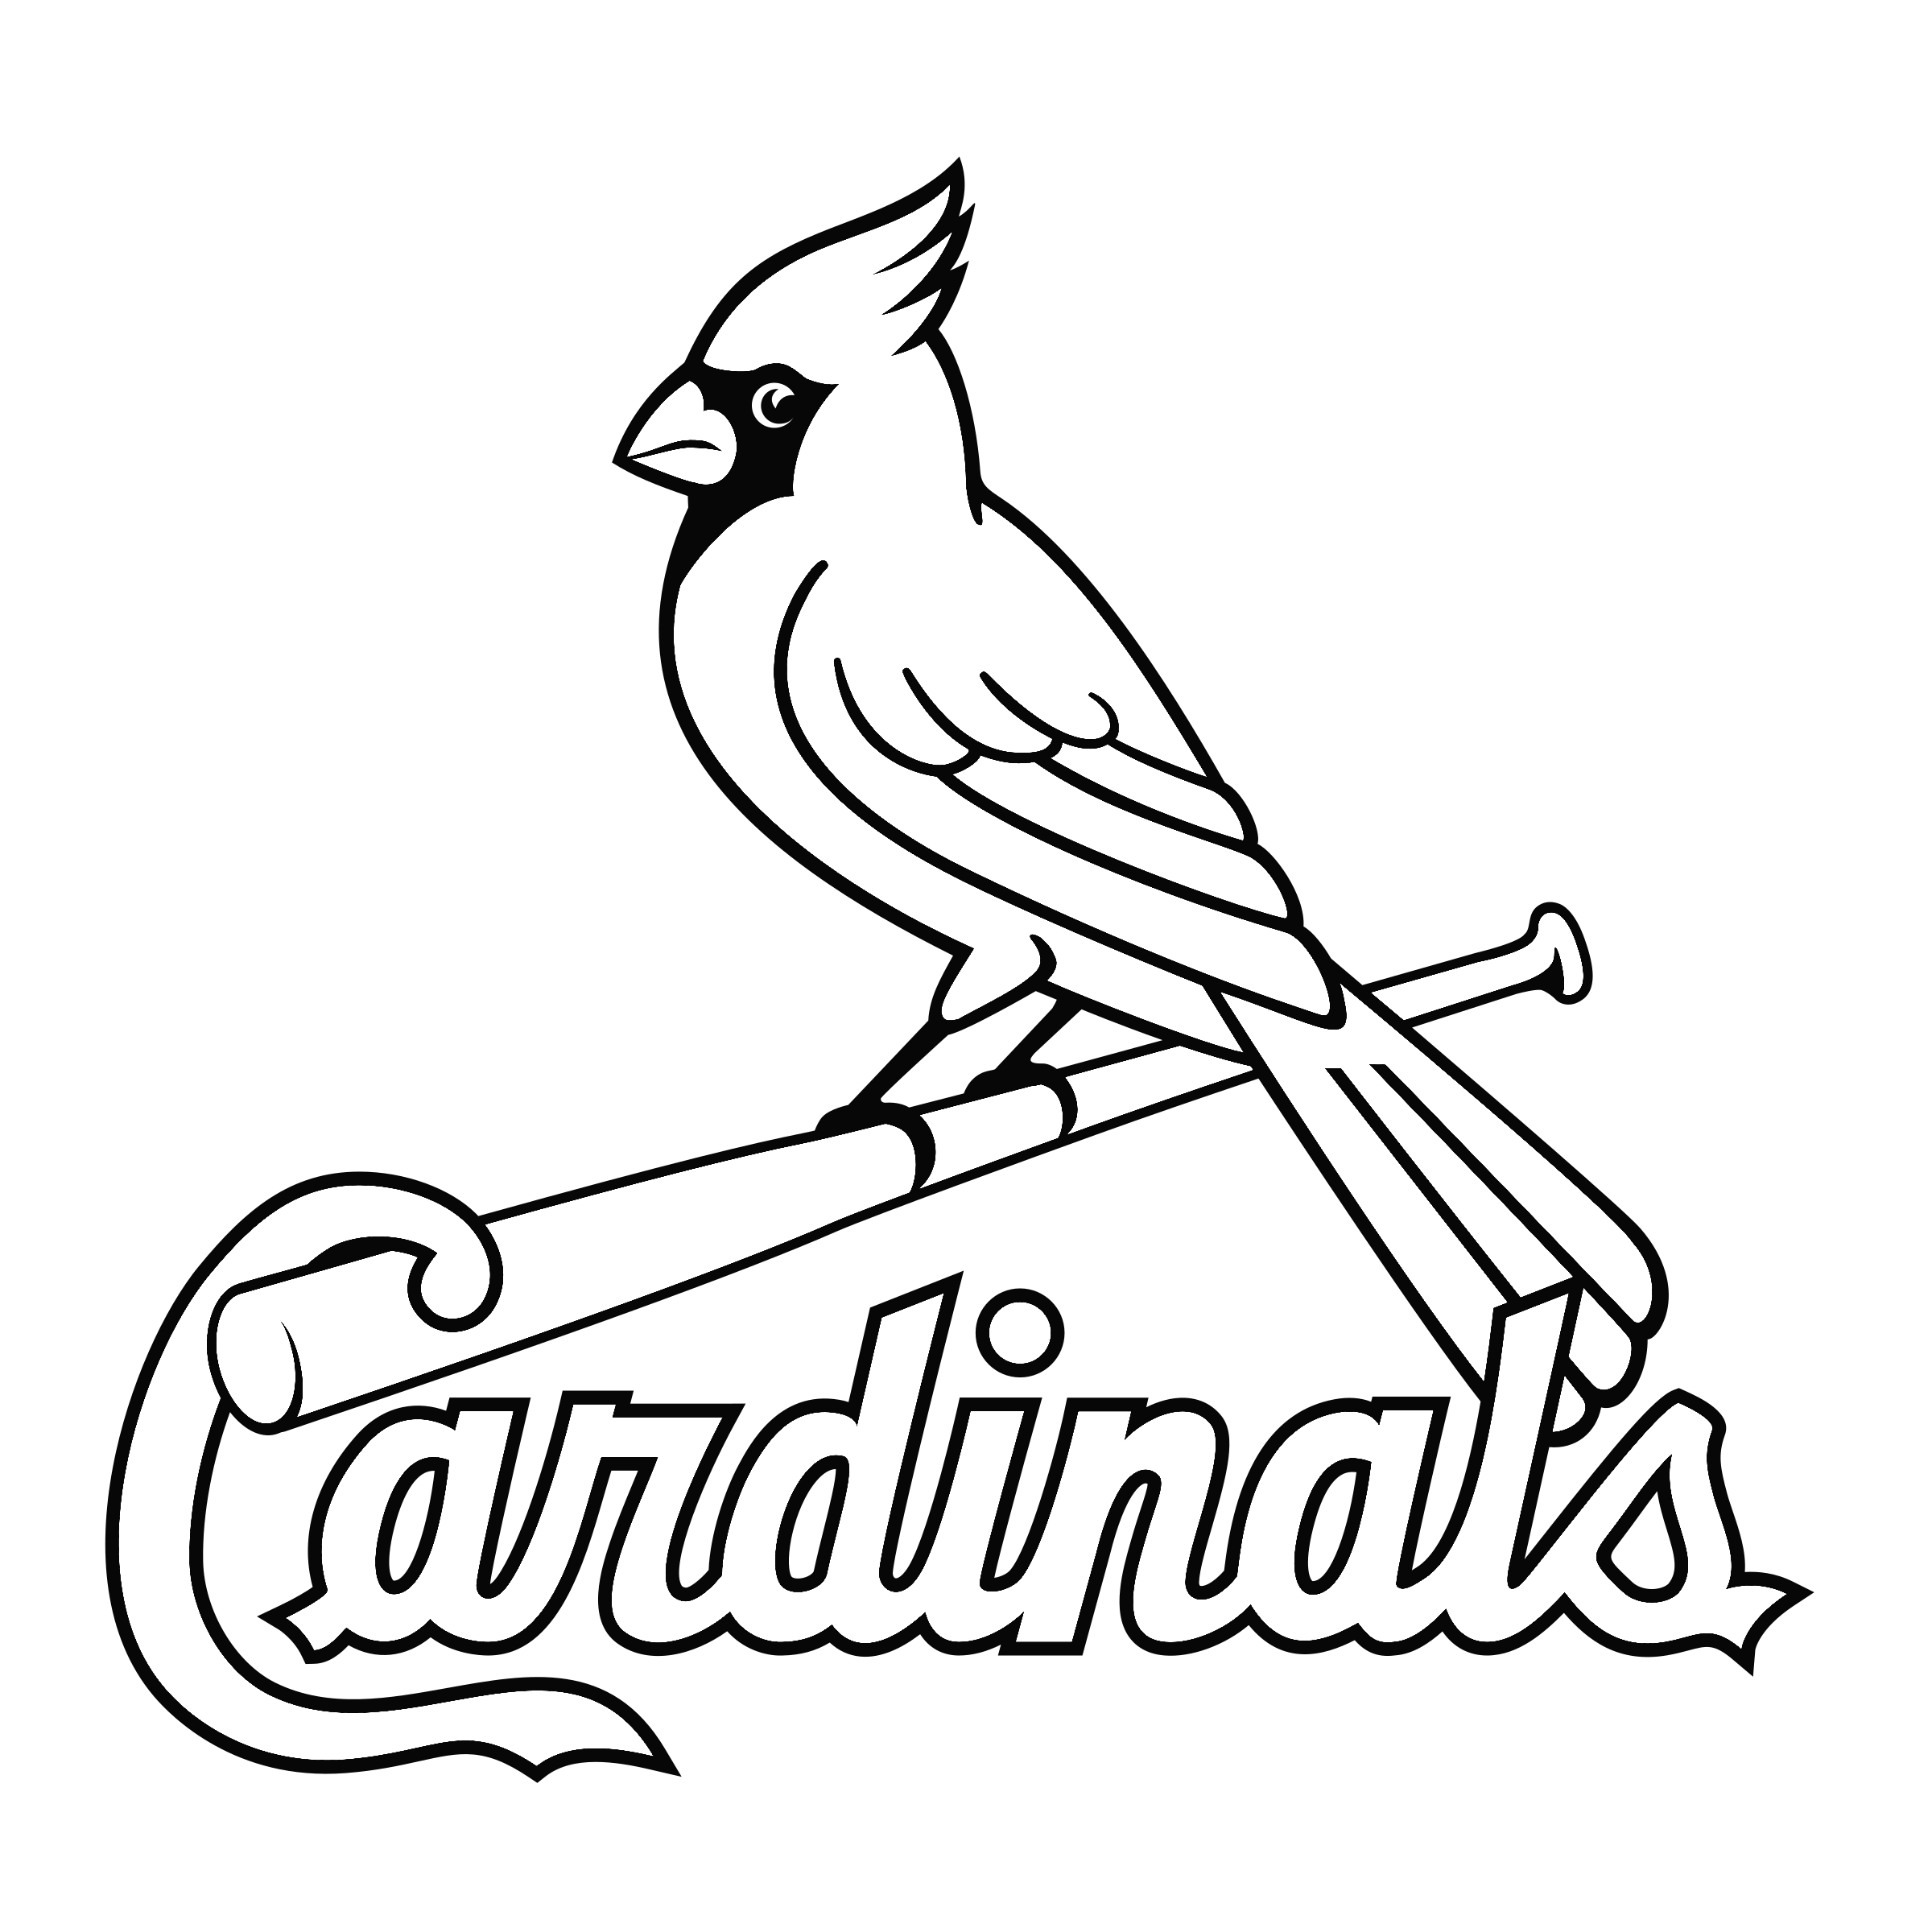 st louis cardinals logo black and white